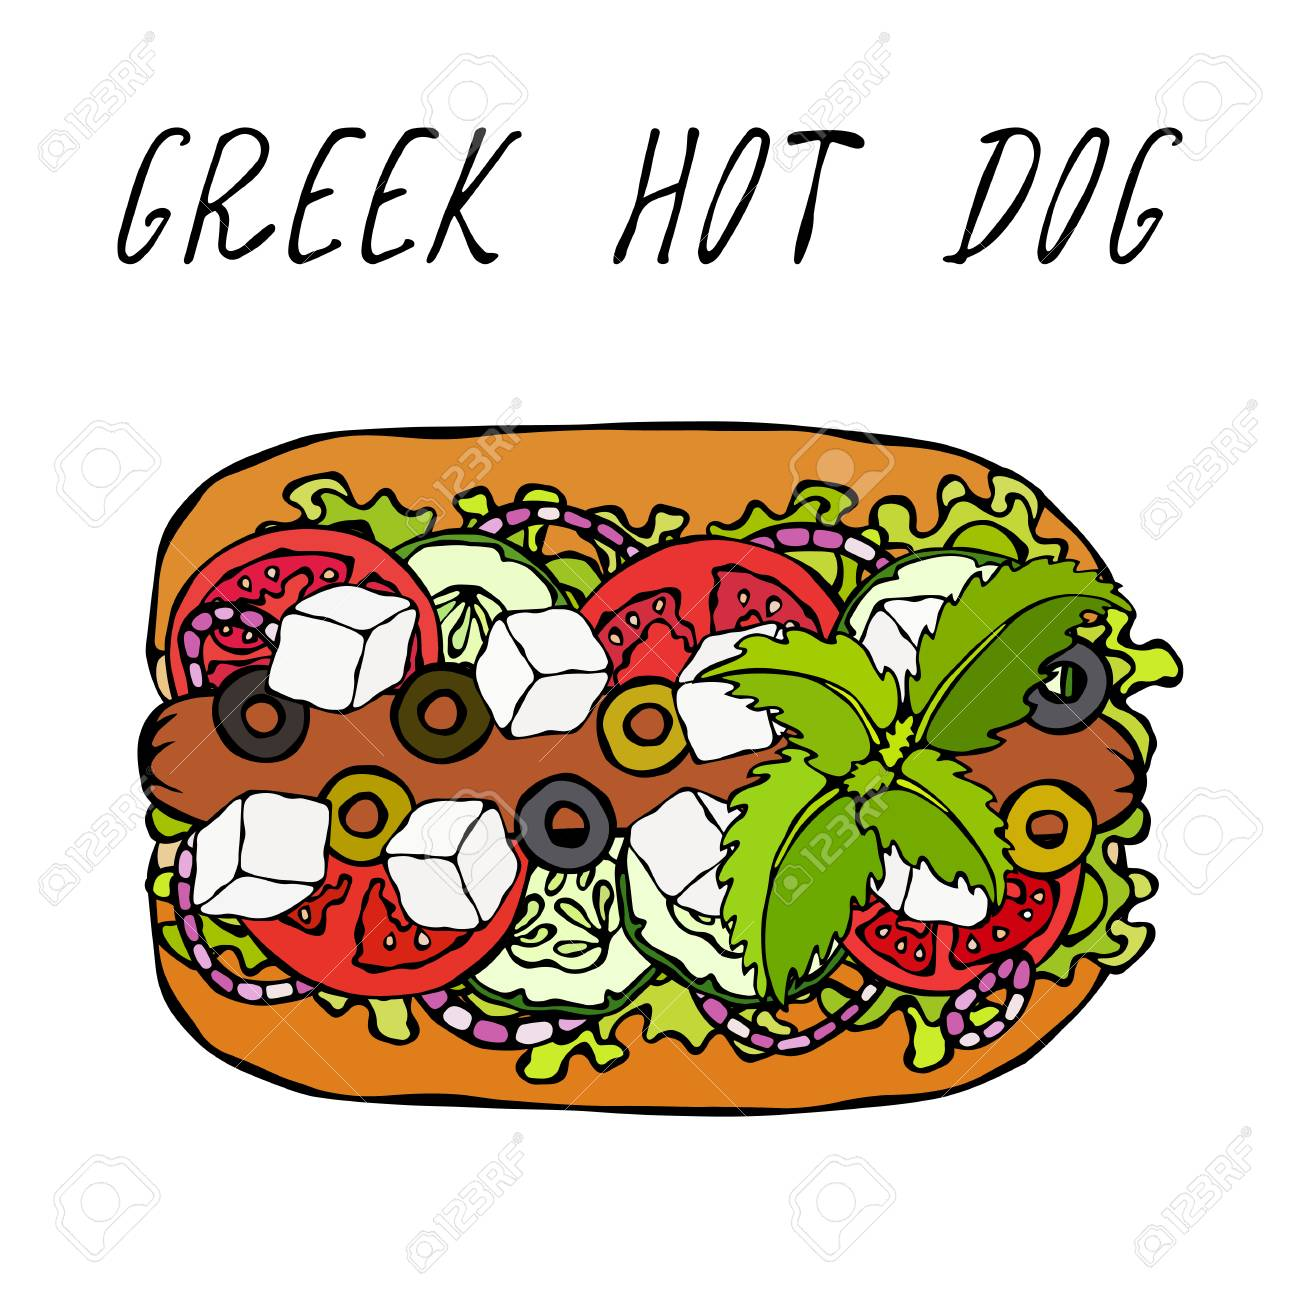 Greek Hot Dog. Feta Cheese, Basil. Olives, Lettuce Salad, Tomato, Cucumber. Fast Food Collection. Hand Drawn High Quality Vector Illustration. Doodle Style - 115030375